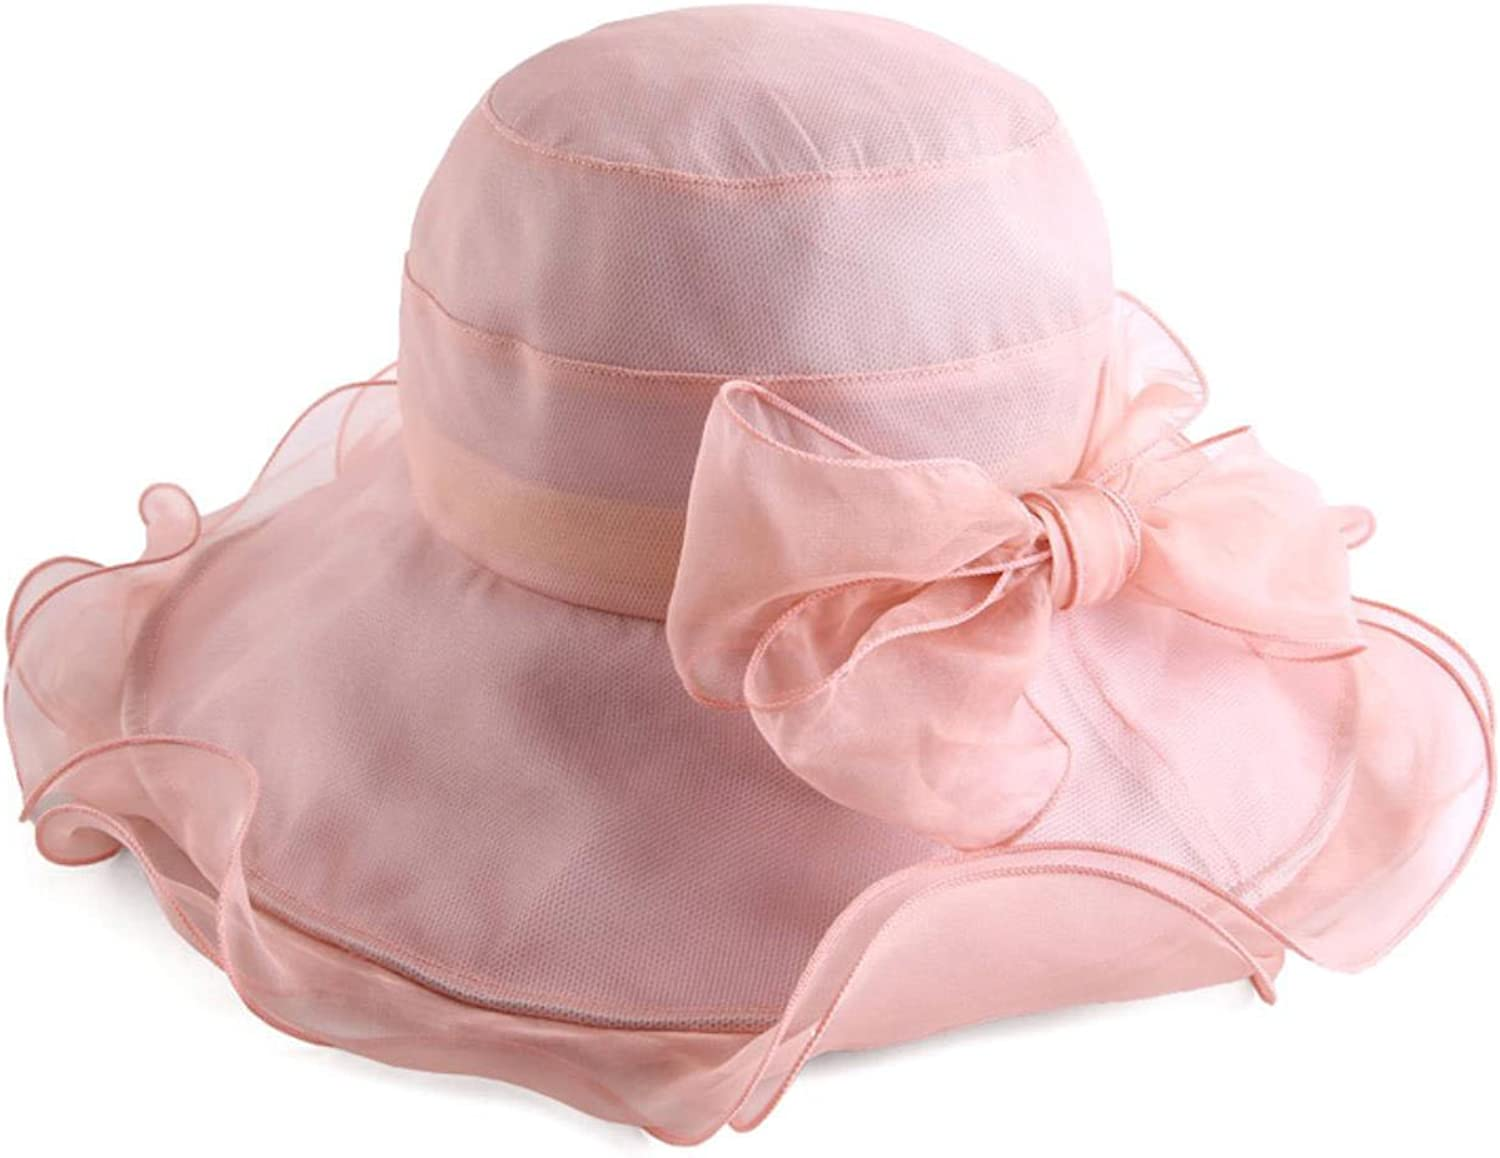 EqEUEZQr Floral Bow Organza Foldable Wide Brim Floppy Beach Hats for Women Adjustable Silk Sun Caps